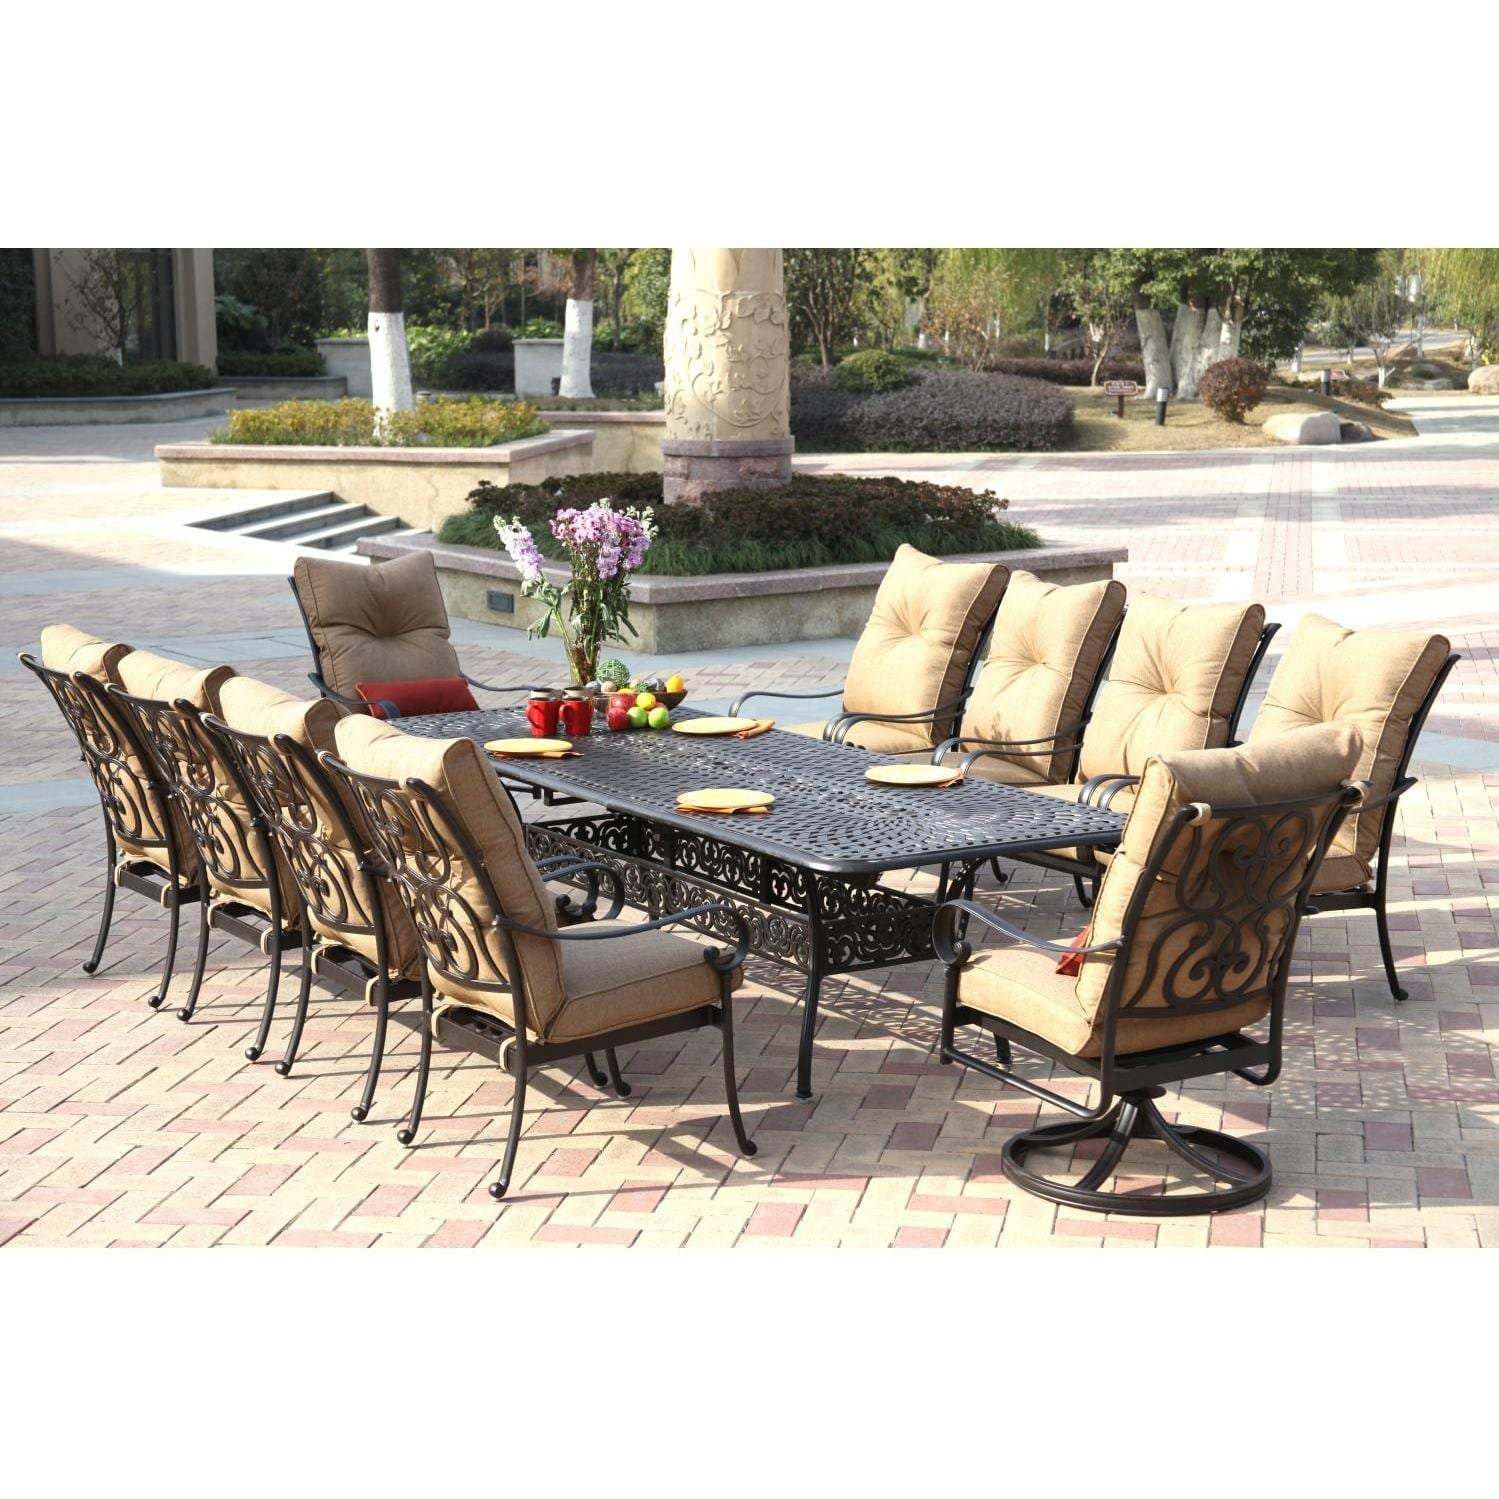 Darlee Santa Anita 11 Piece Cast Aluminum Patio Dining Set ...